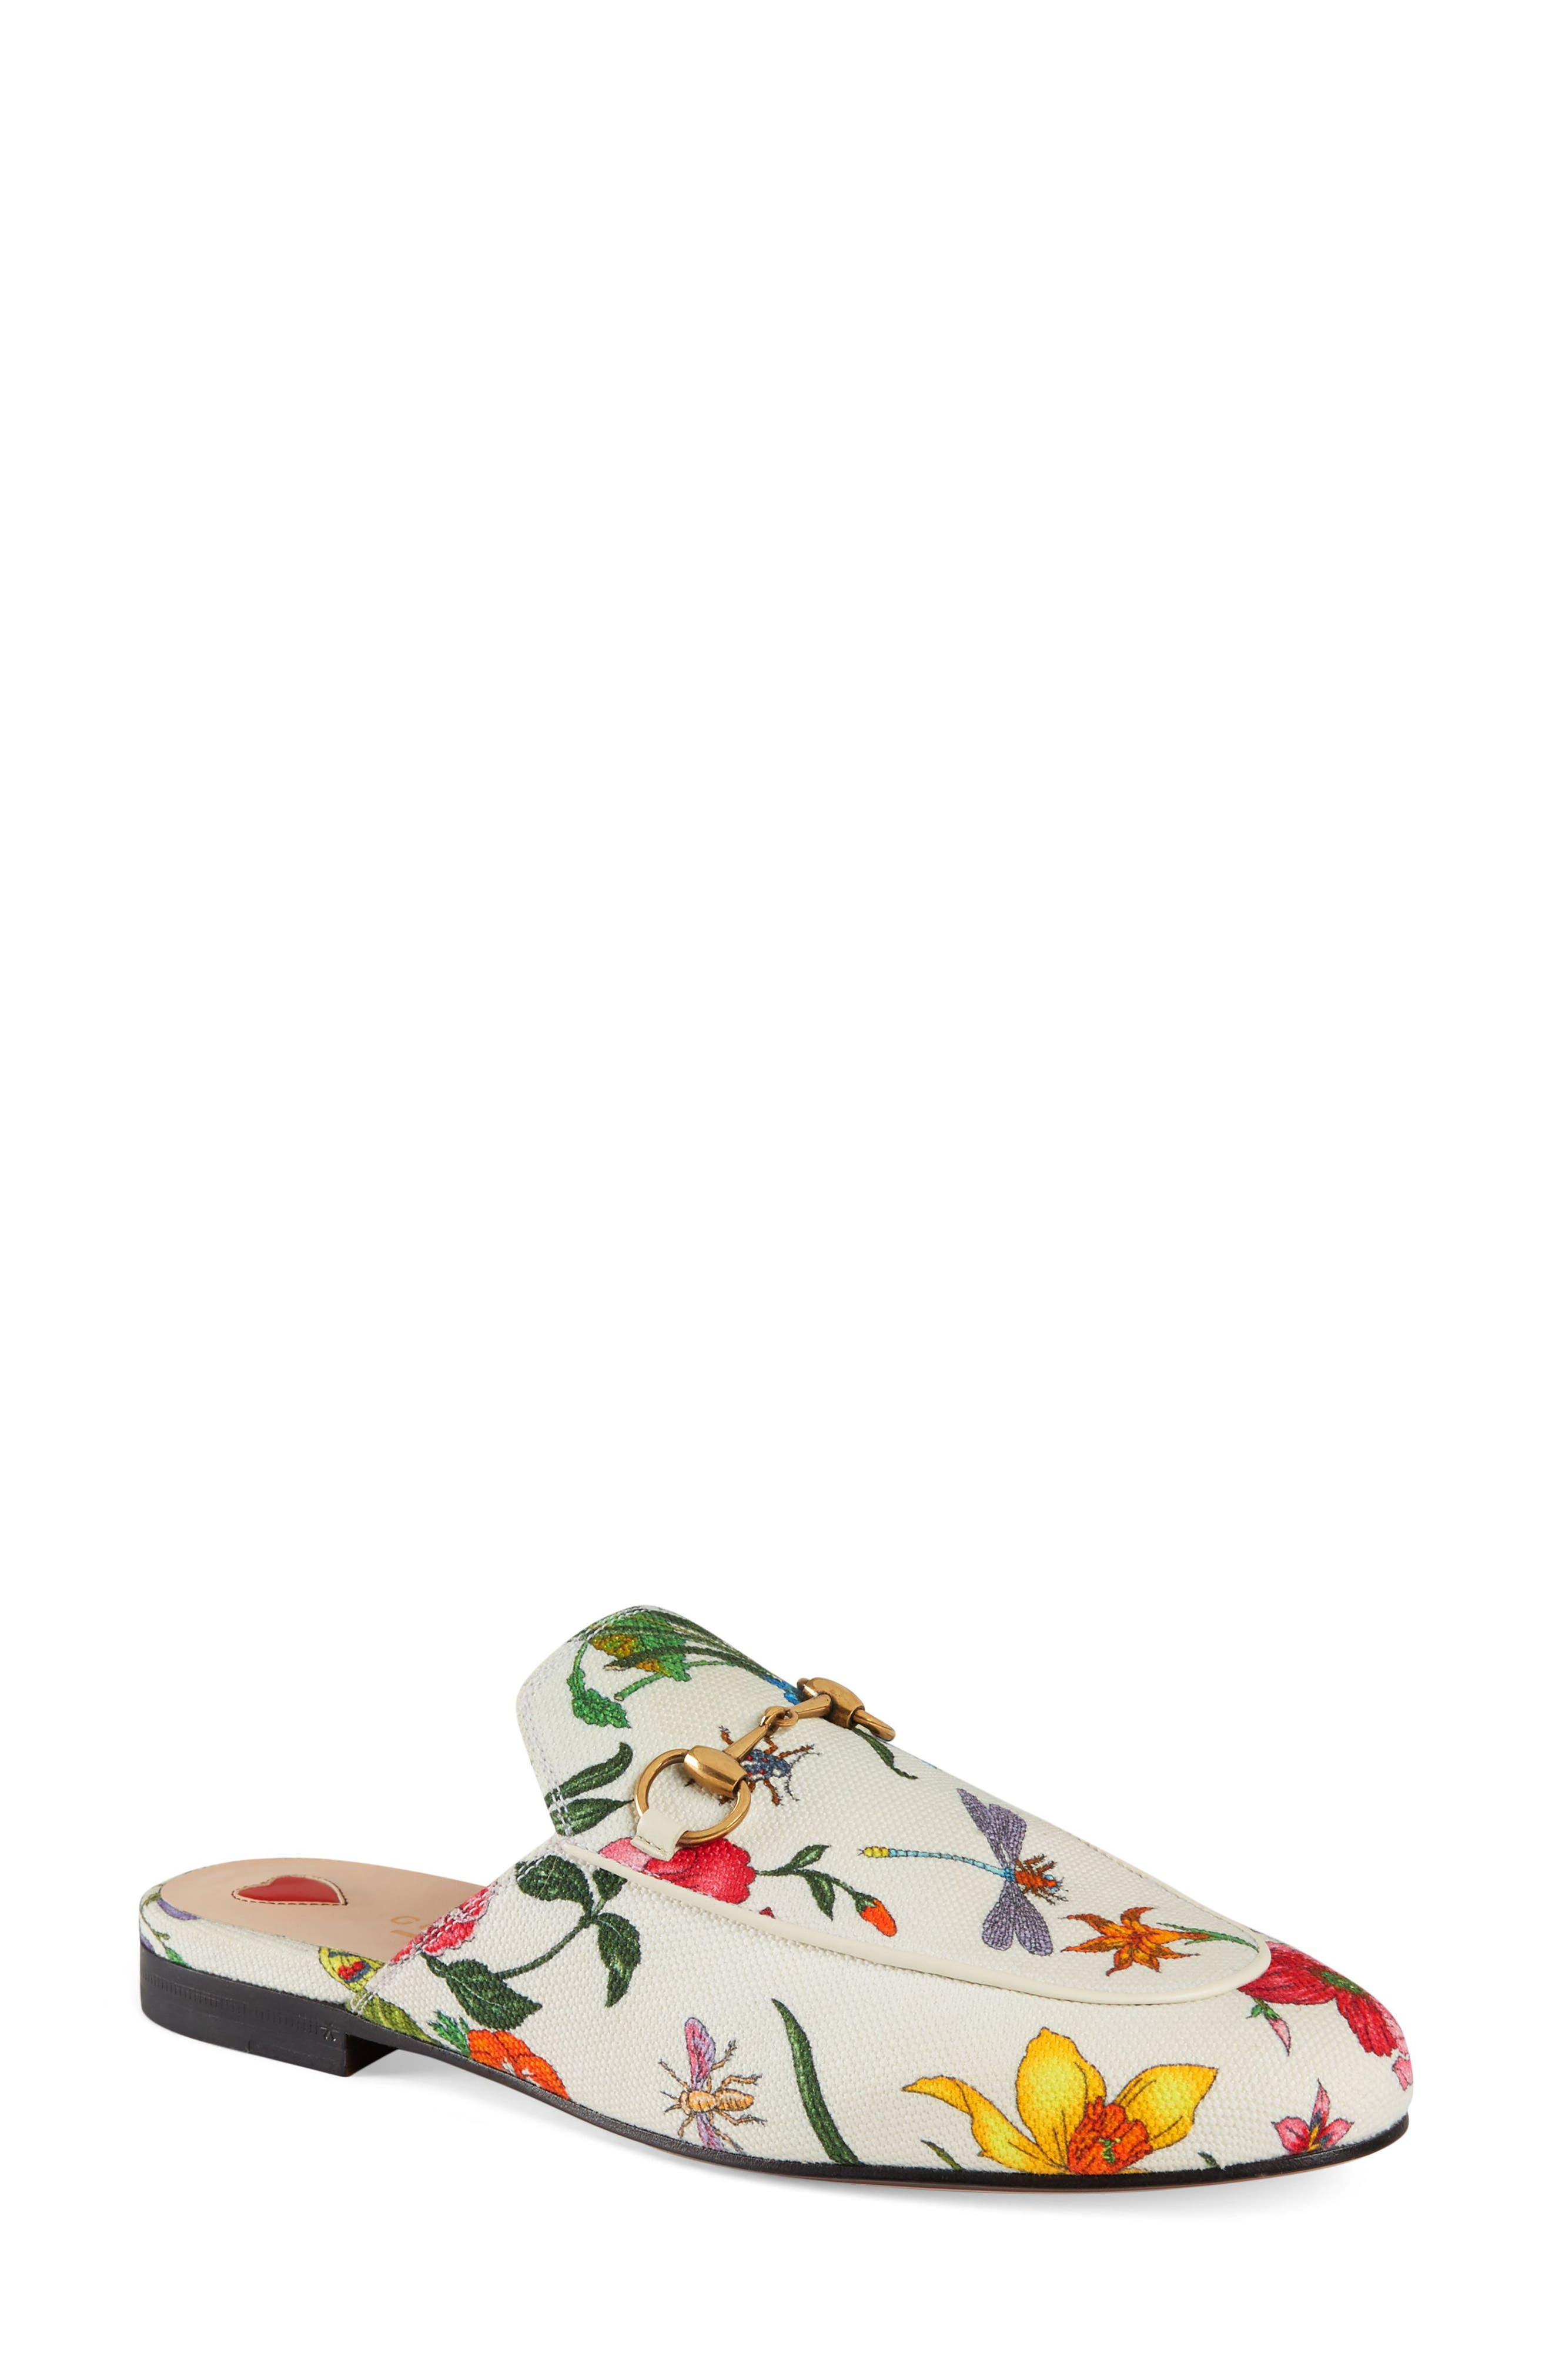 Princetown Loafer Mule,                             Main thumbnail 1, color,                             WHITE FLORAL